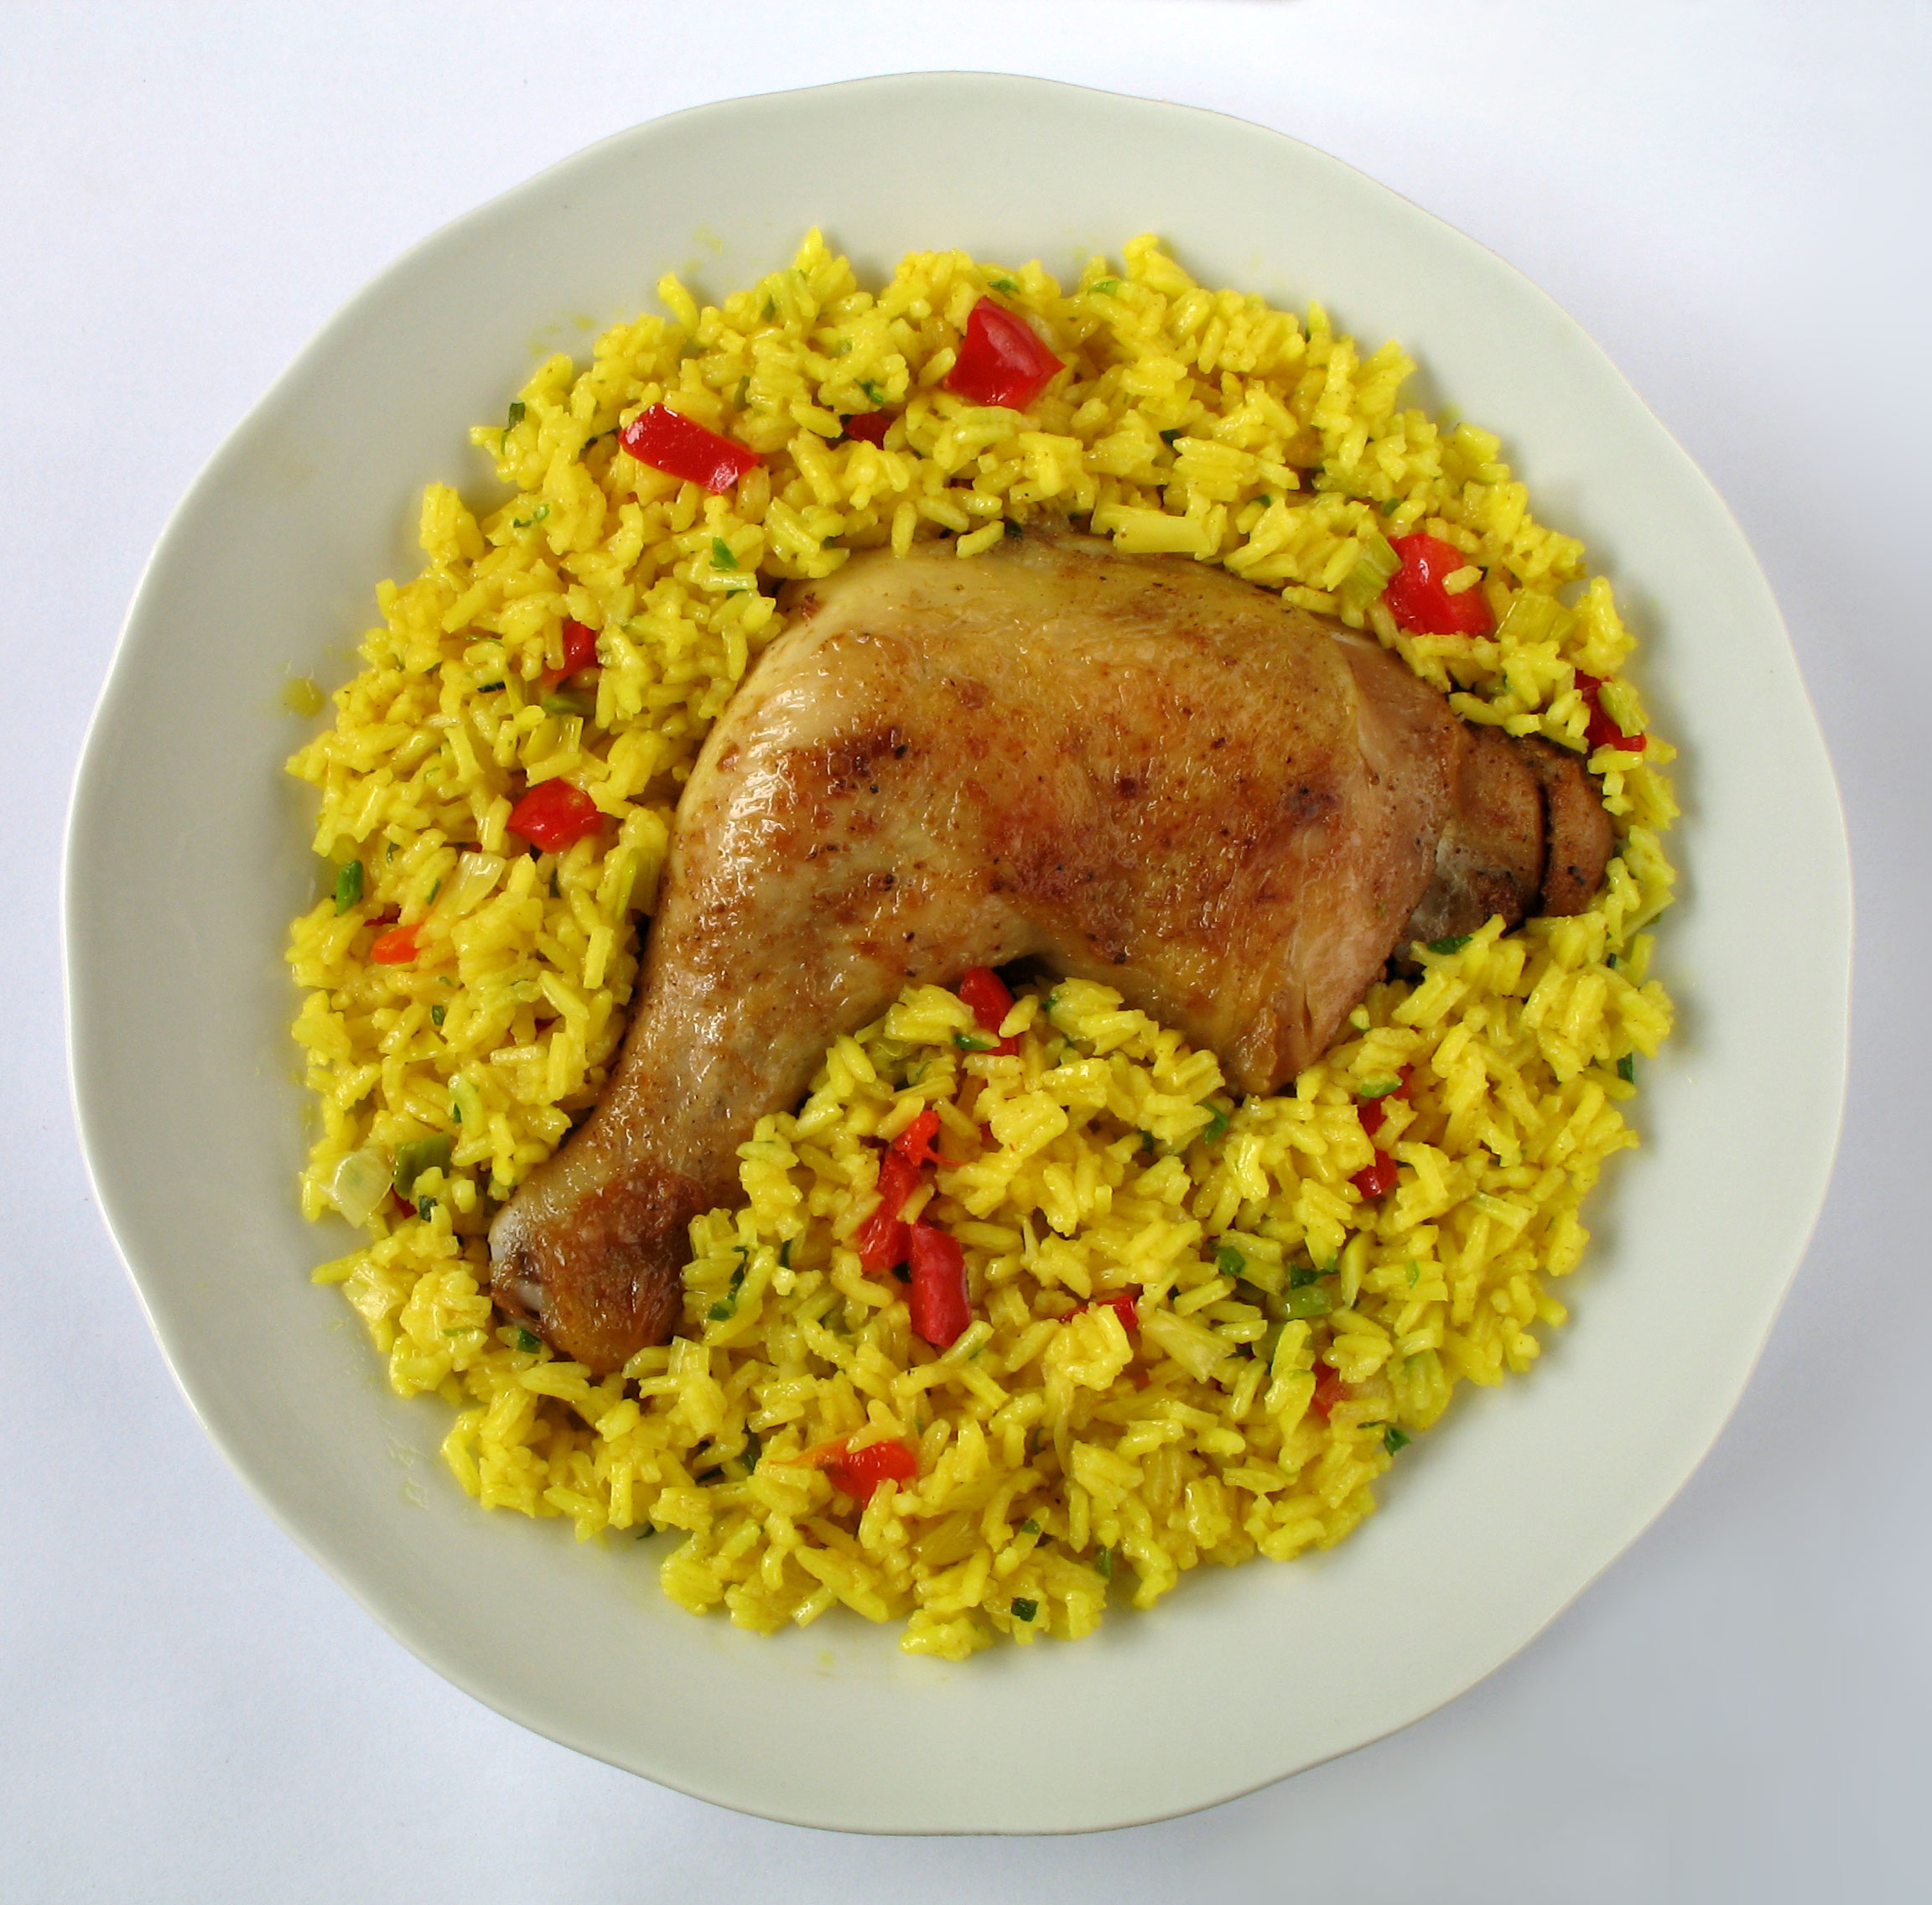 Como Cocinar Arroz Con Pollo File Arroz Con Pollo Jpg Wikimedia Commons